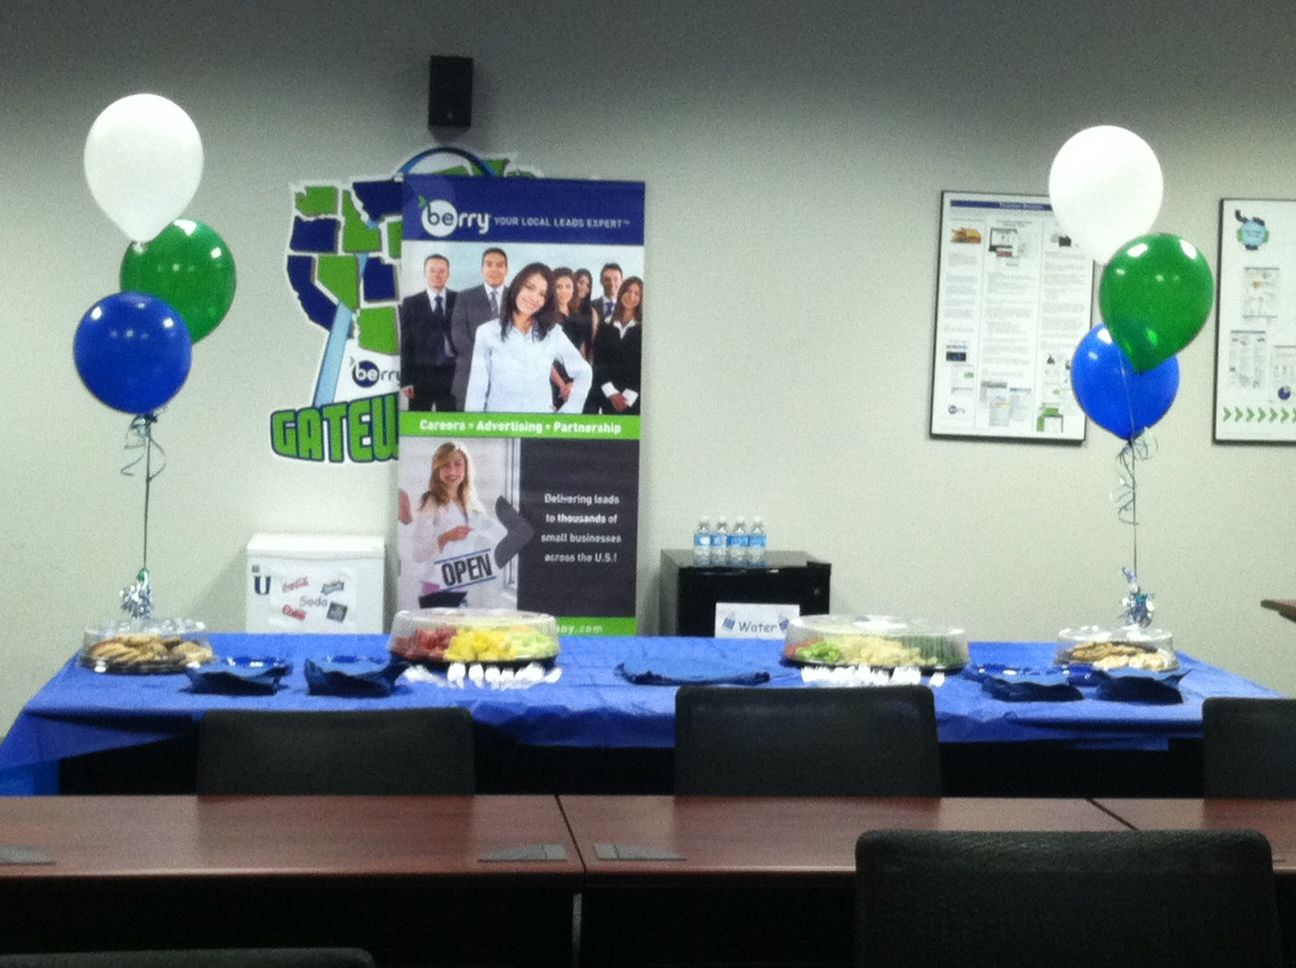 Career fair that was hosted in our St. Louis, MO office